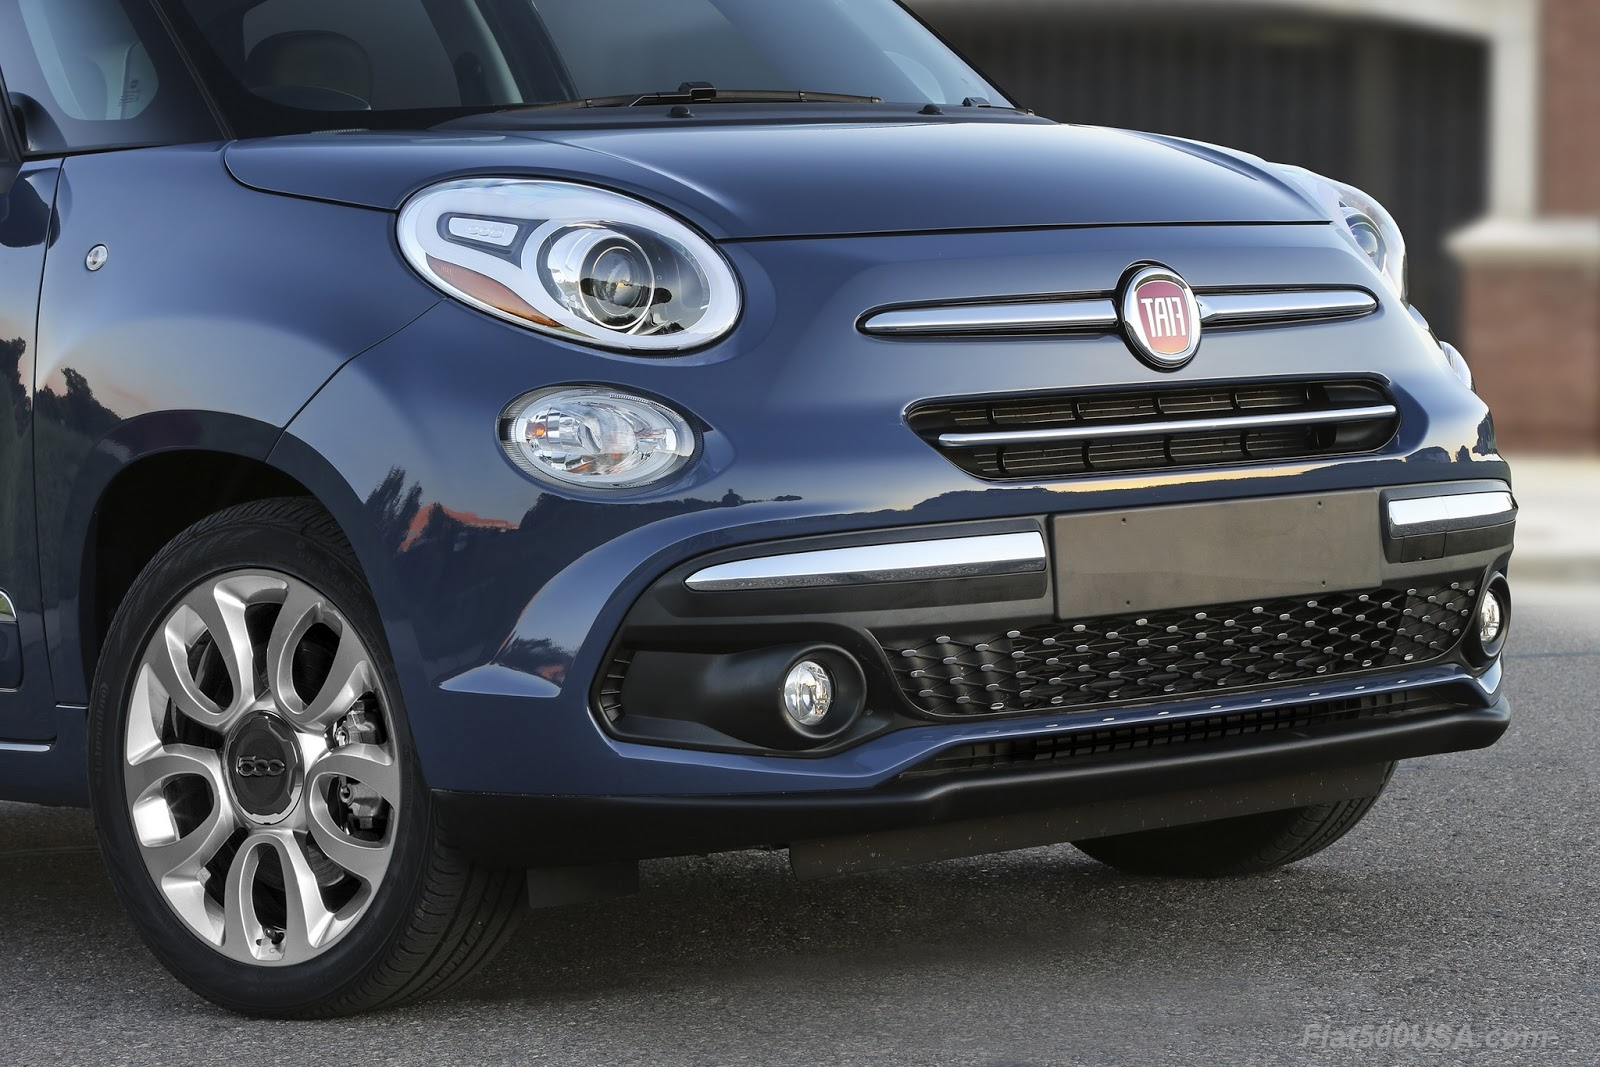 The fiat 500l has been the best selling car in its class since its introduction five years ago the new design features more bright metal and revised trim